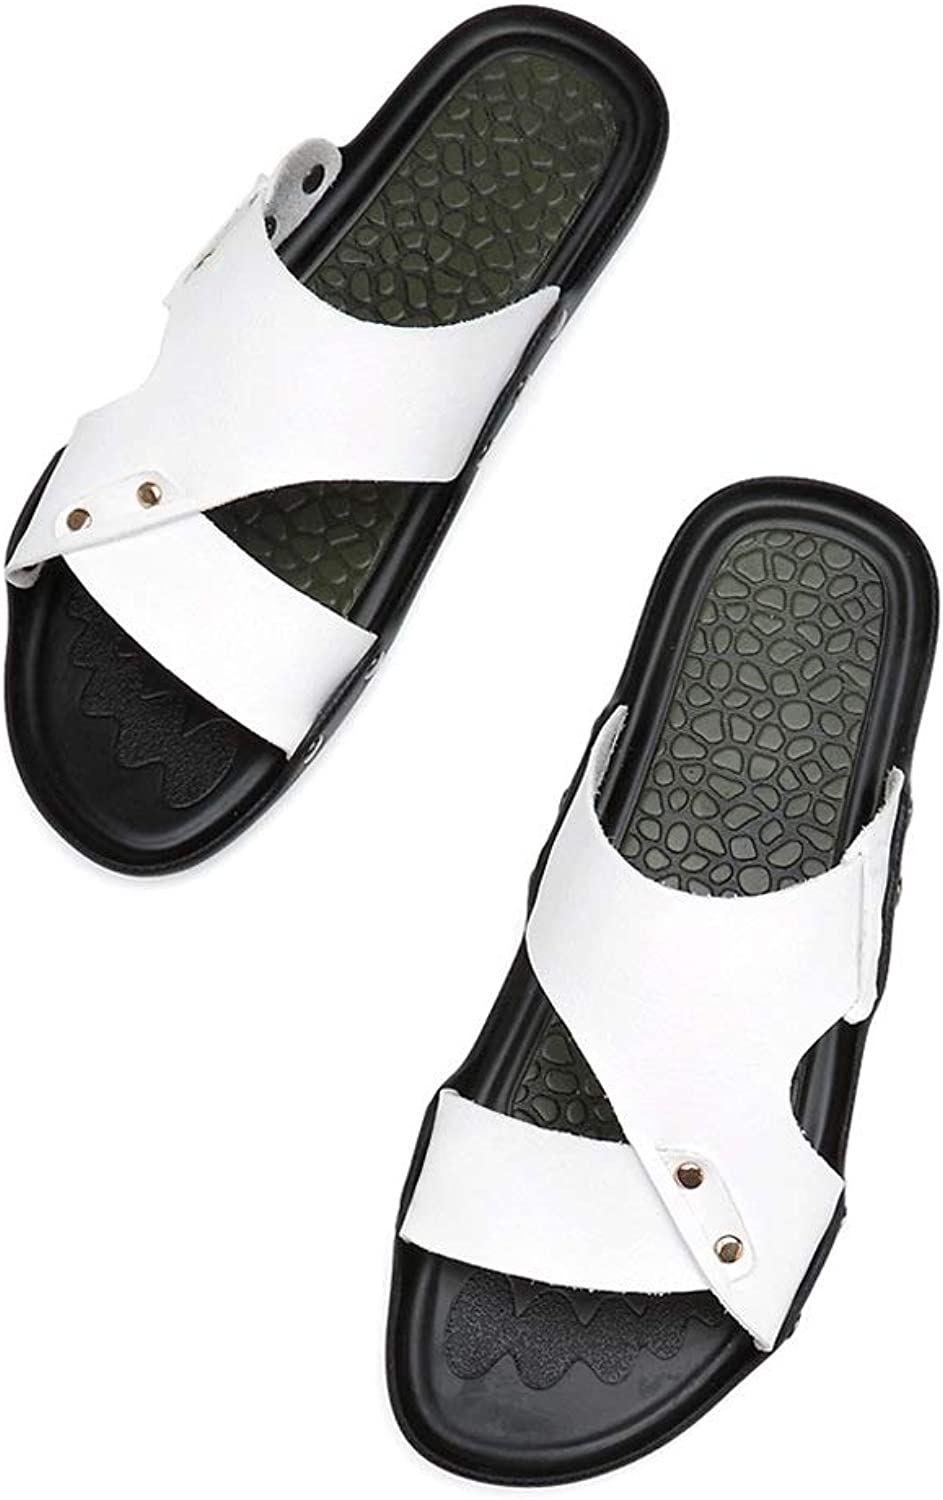 Men's Thong Flat Sandals Flip-Flops Slippers Sandals Casual Men's Sandals (color   White, Size   7.5 UK)